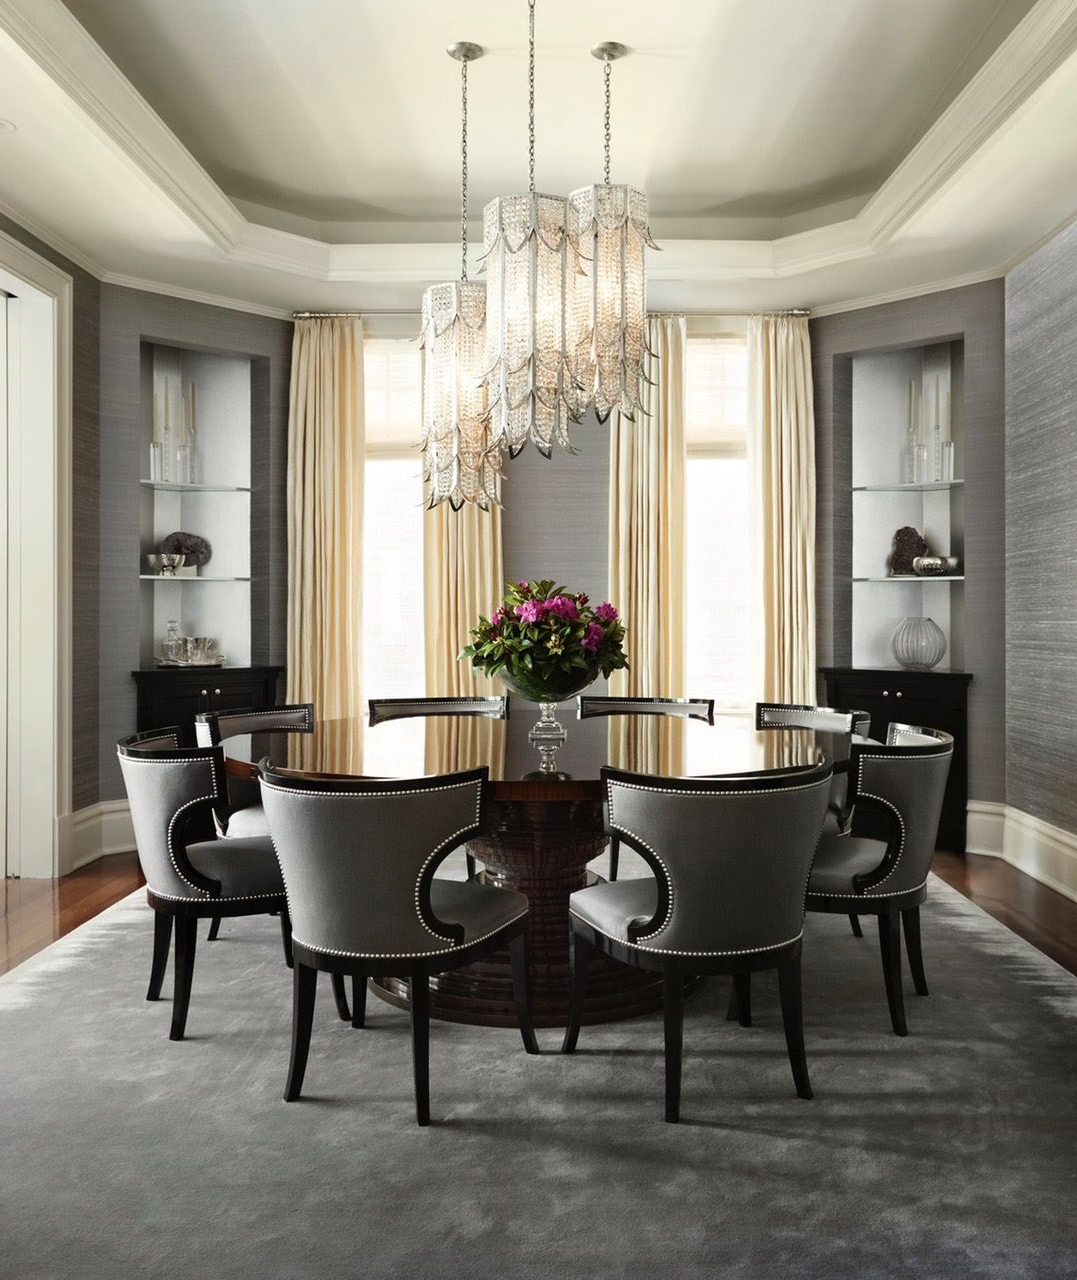 Elegance Large Round Dining Tables Intended For Latest Pinaljohara Almodaimigh On Family Room (View 11 of 30)